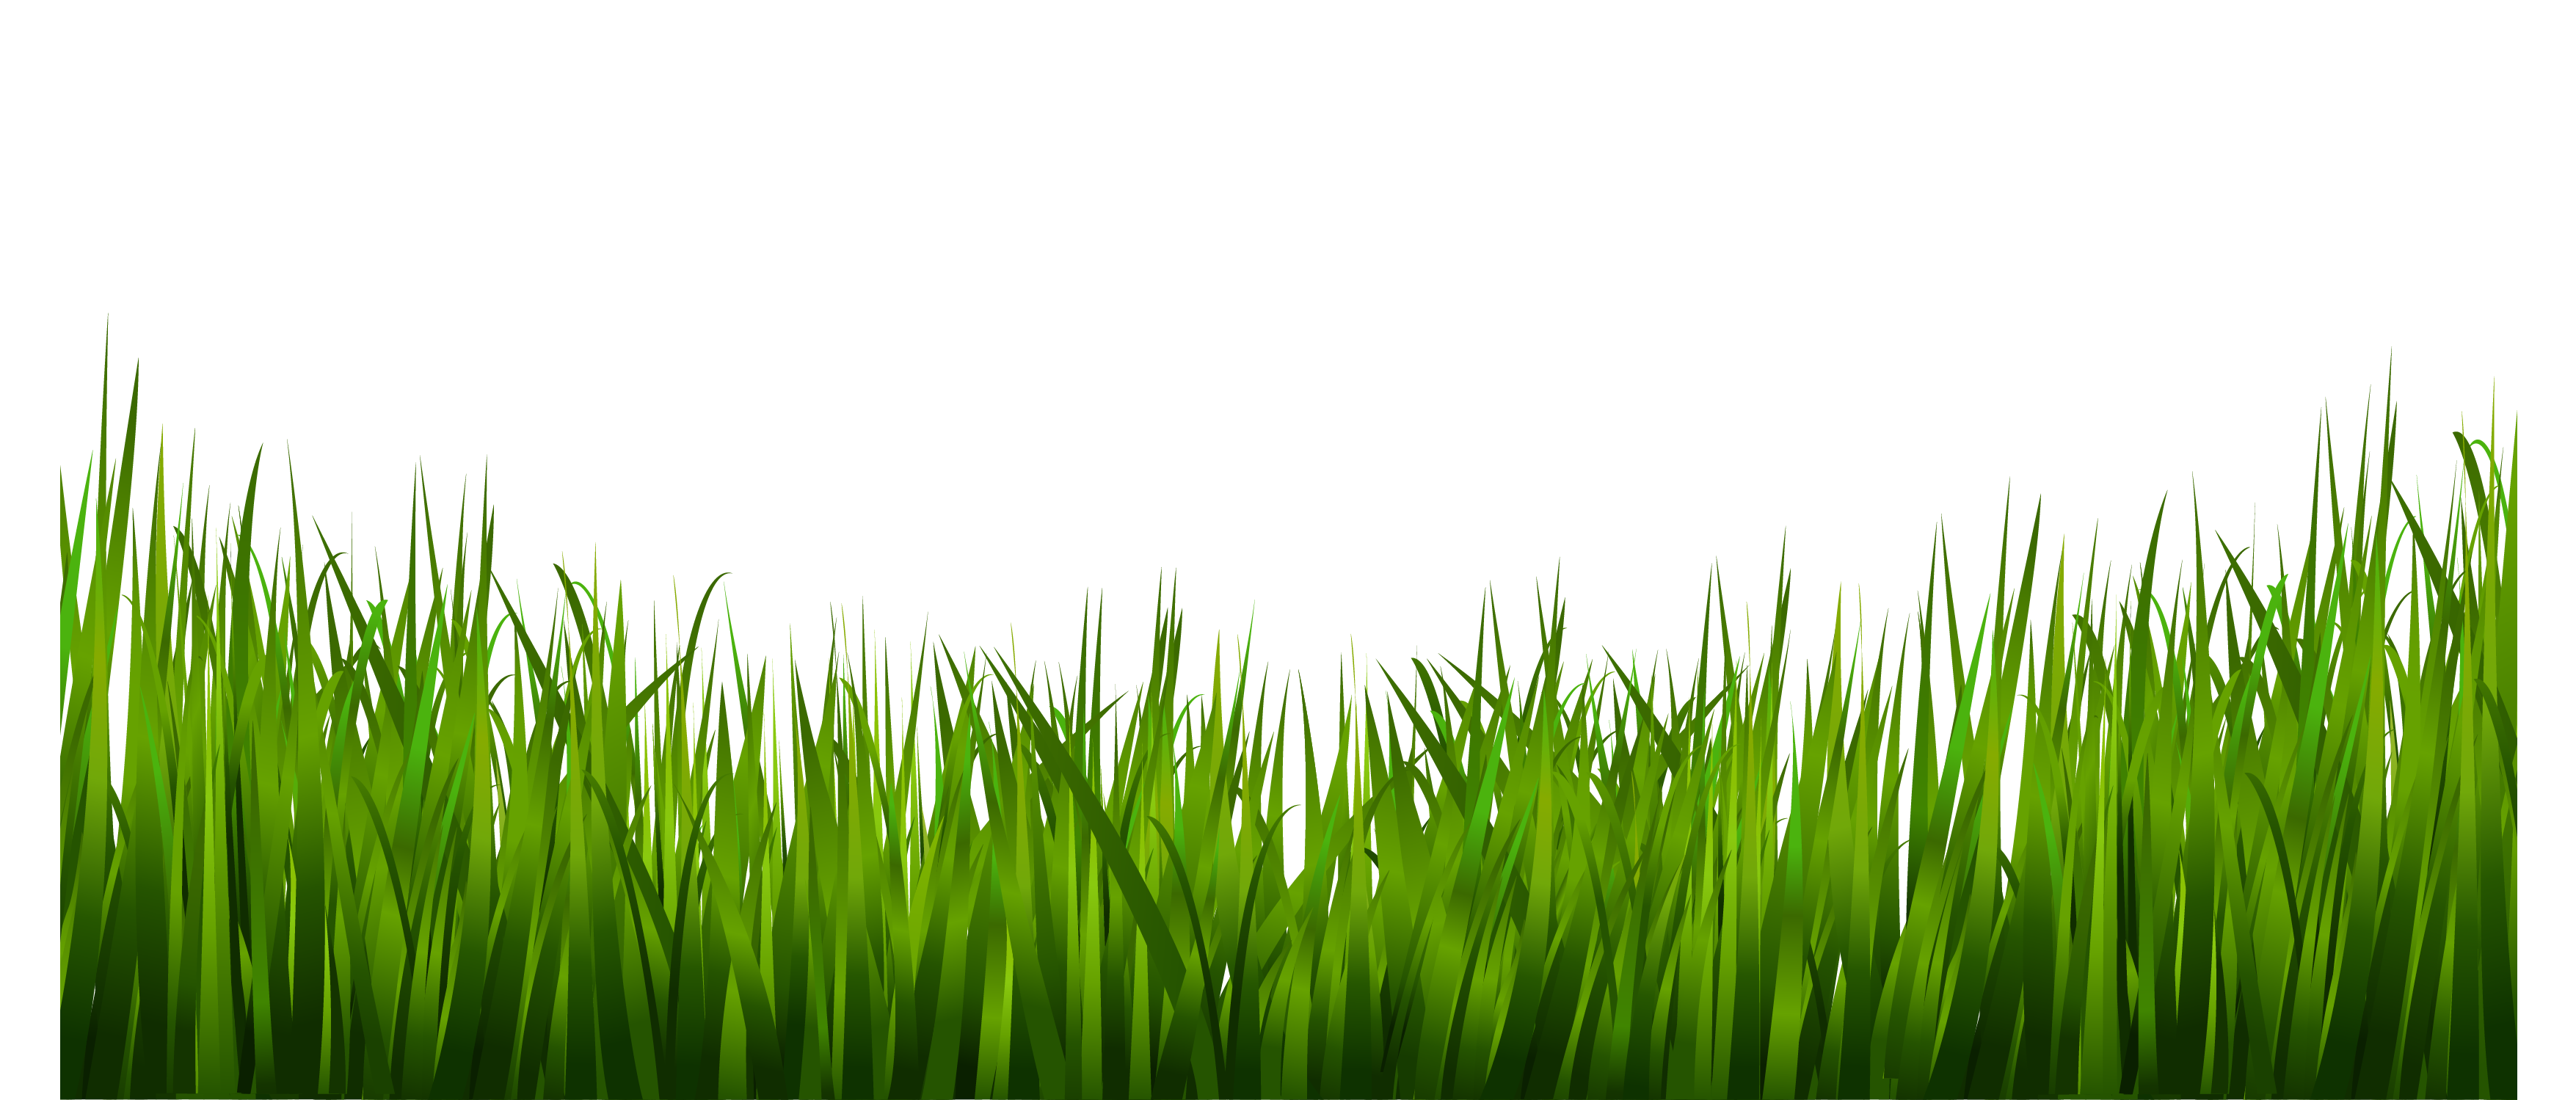 clip art library stock Png images a live. Lawn clipart wild grass.